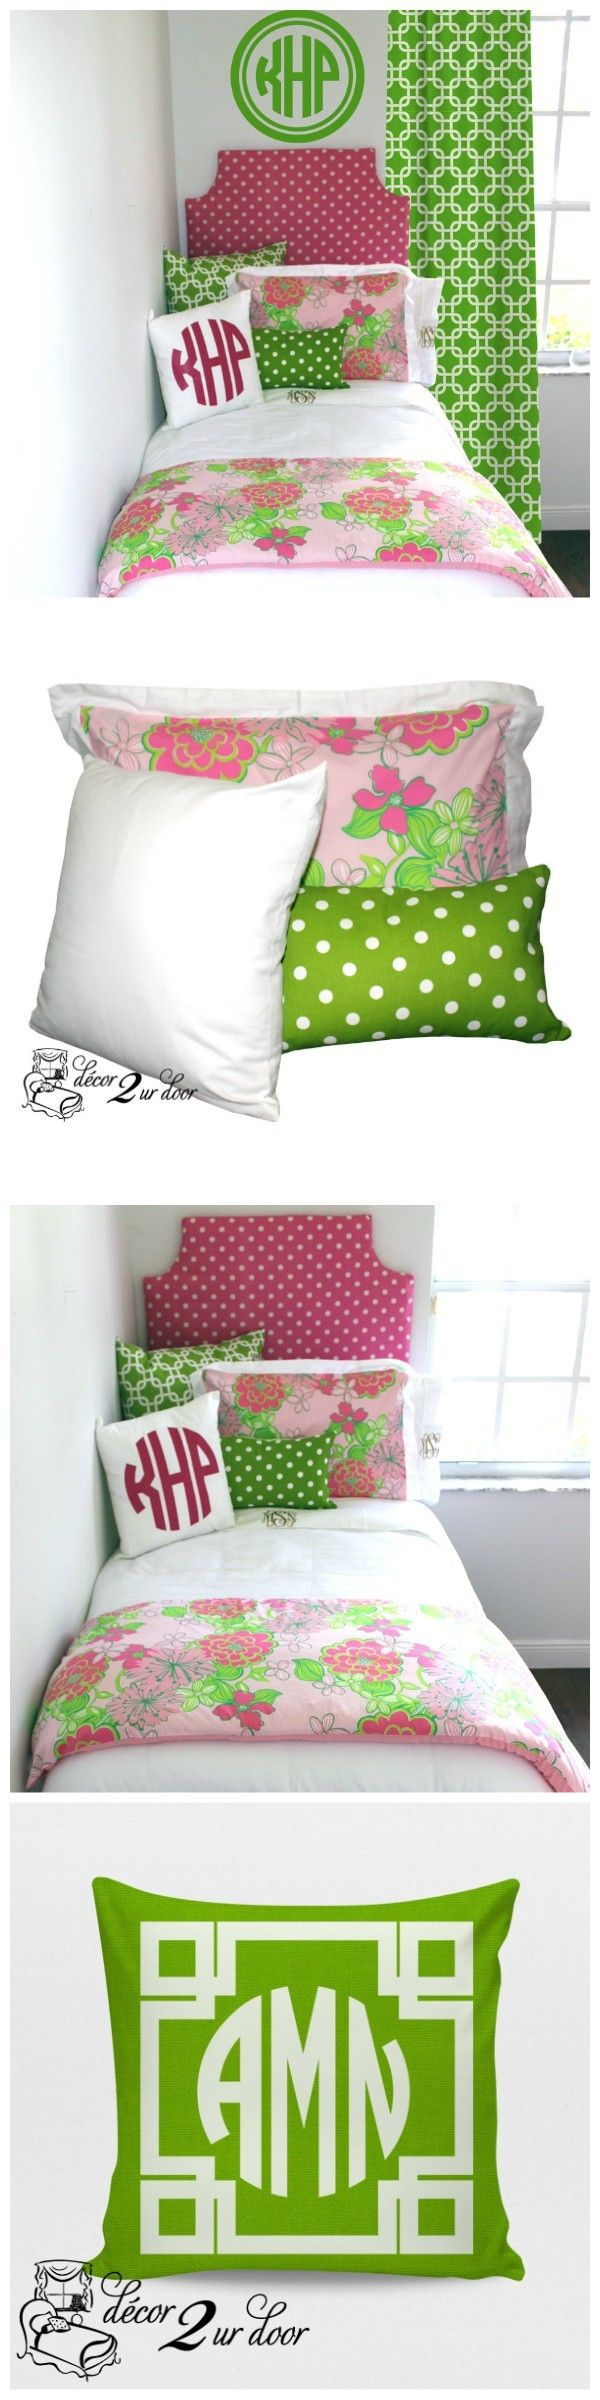 Dorm Room Bedding From Featuring Unique And Stylish Designs. Design Your  Own Dorm Room Bedding Or Select From One Of Our Designer Dorm Bedding Sets. Part 60